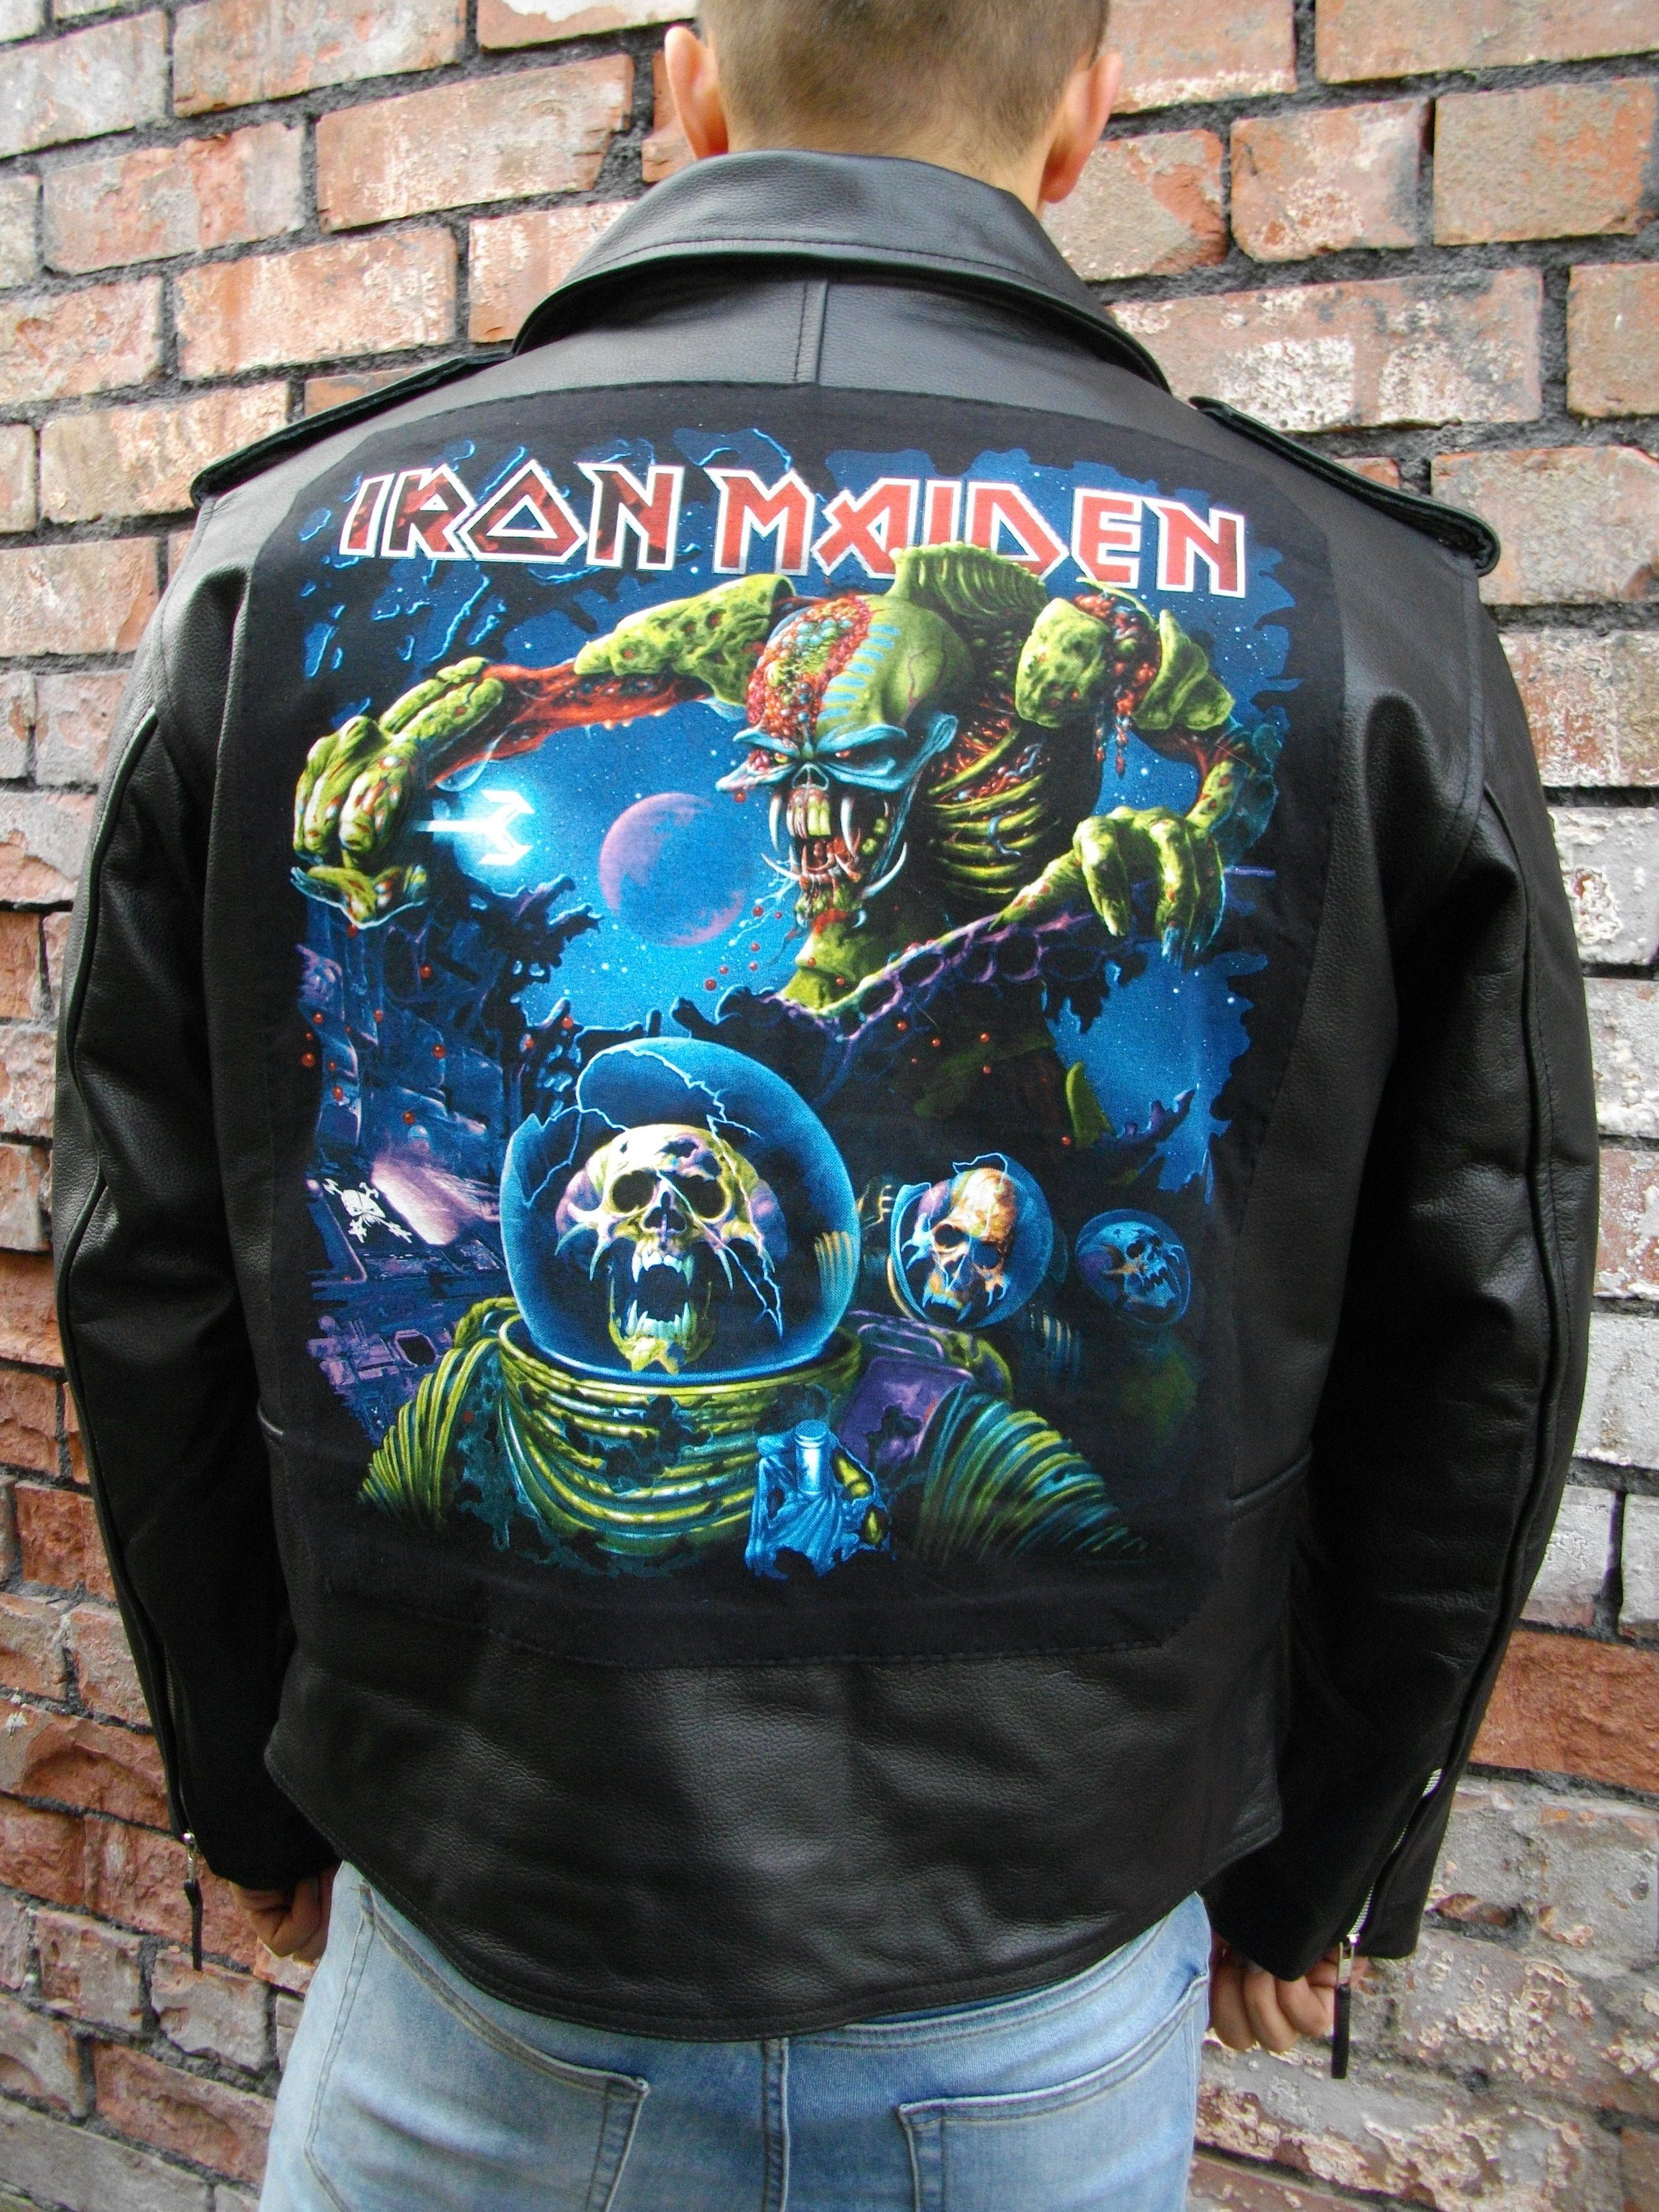 Latest Custom Creation From Our Amazing Metalworks Team Awesome Iron Maiden Final Frontier Heavy Meta Heavy Metal Clothing Metal Clothing Leather Jacket [ 3332 x 2499 Pixel ]